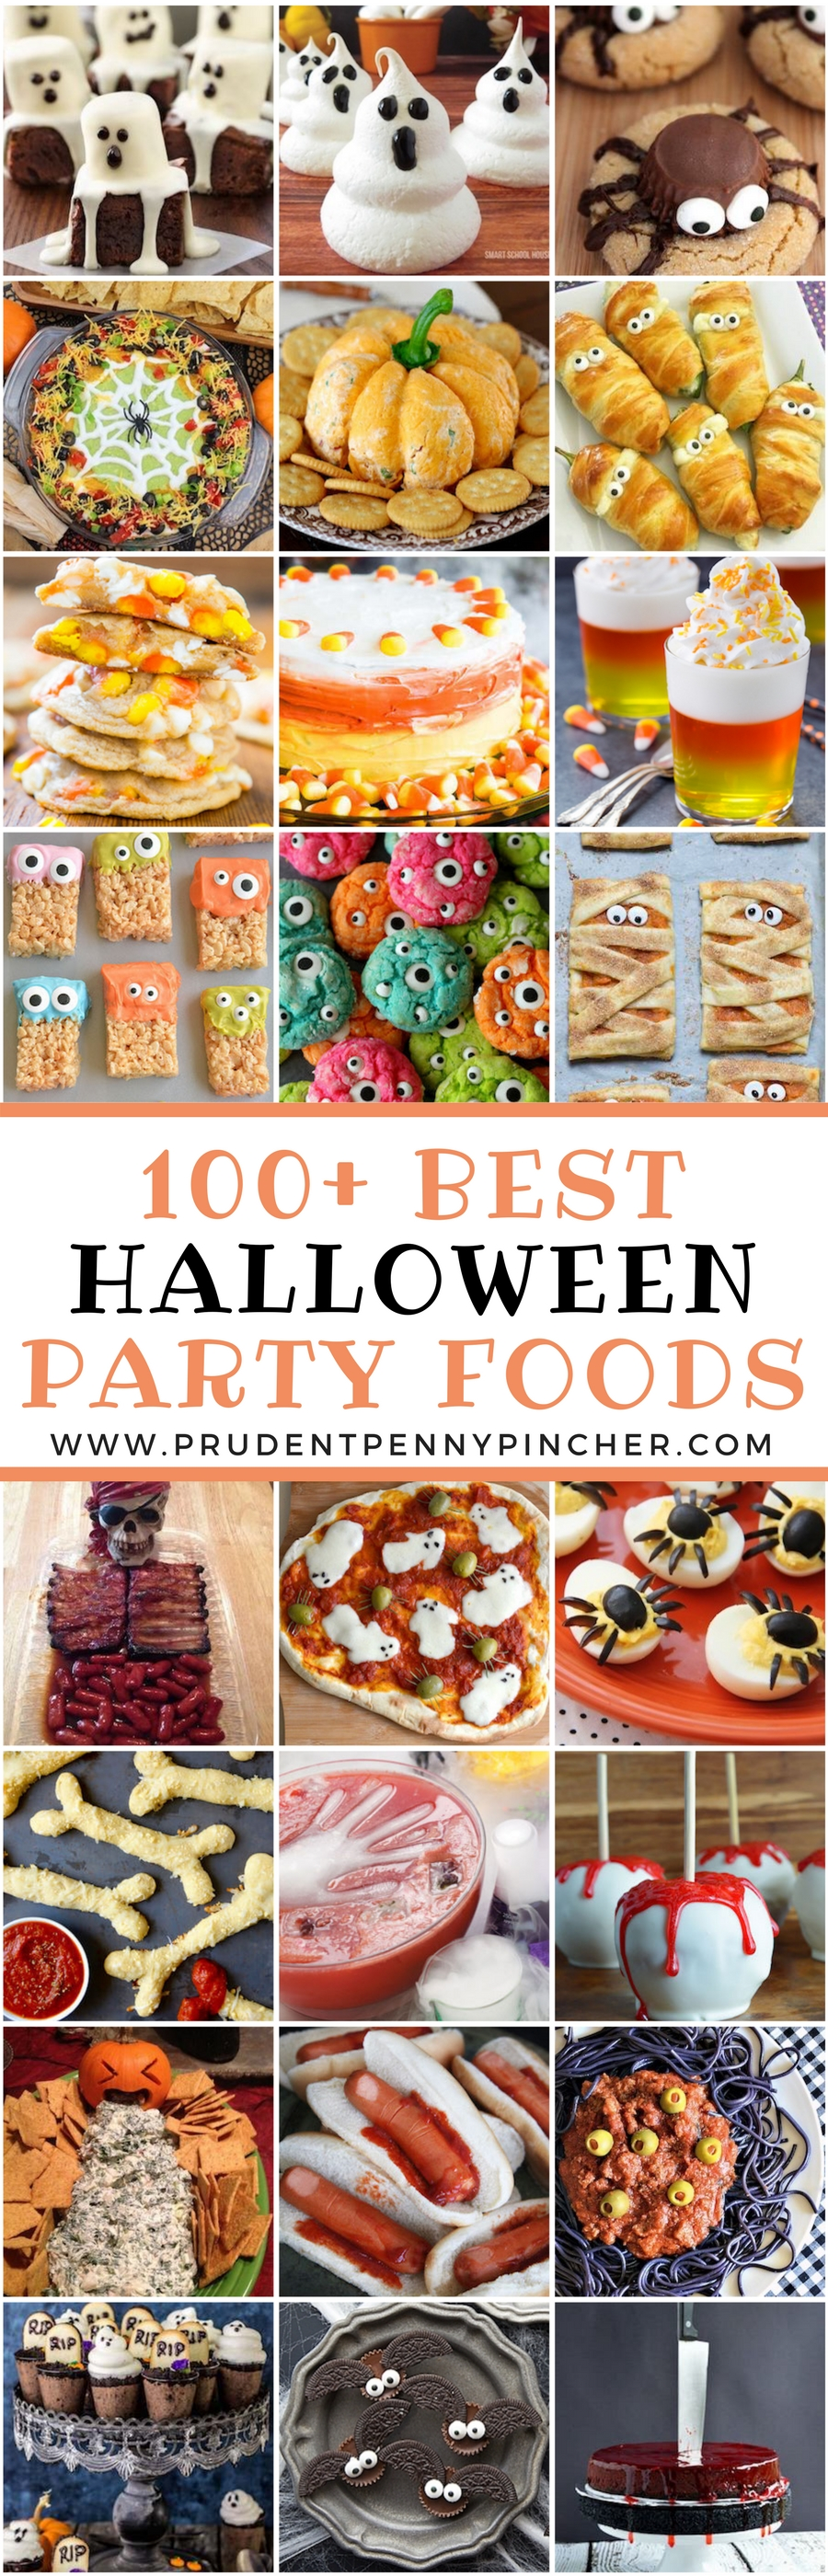 10 most popular halloween party food ideas adults 100 best halloween foods prudent penny pincher